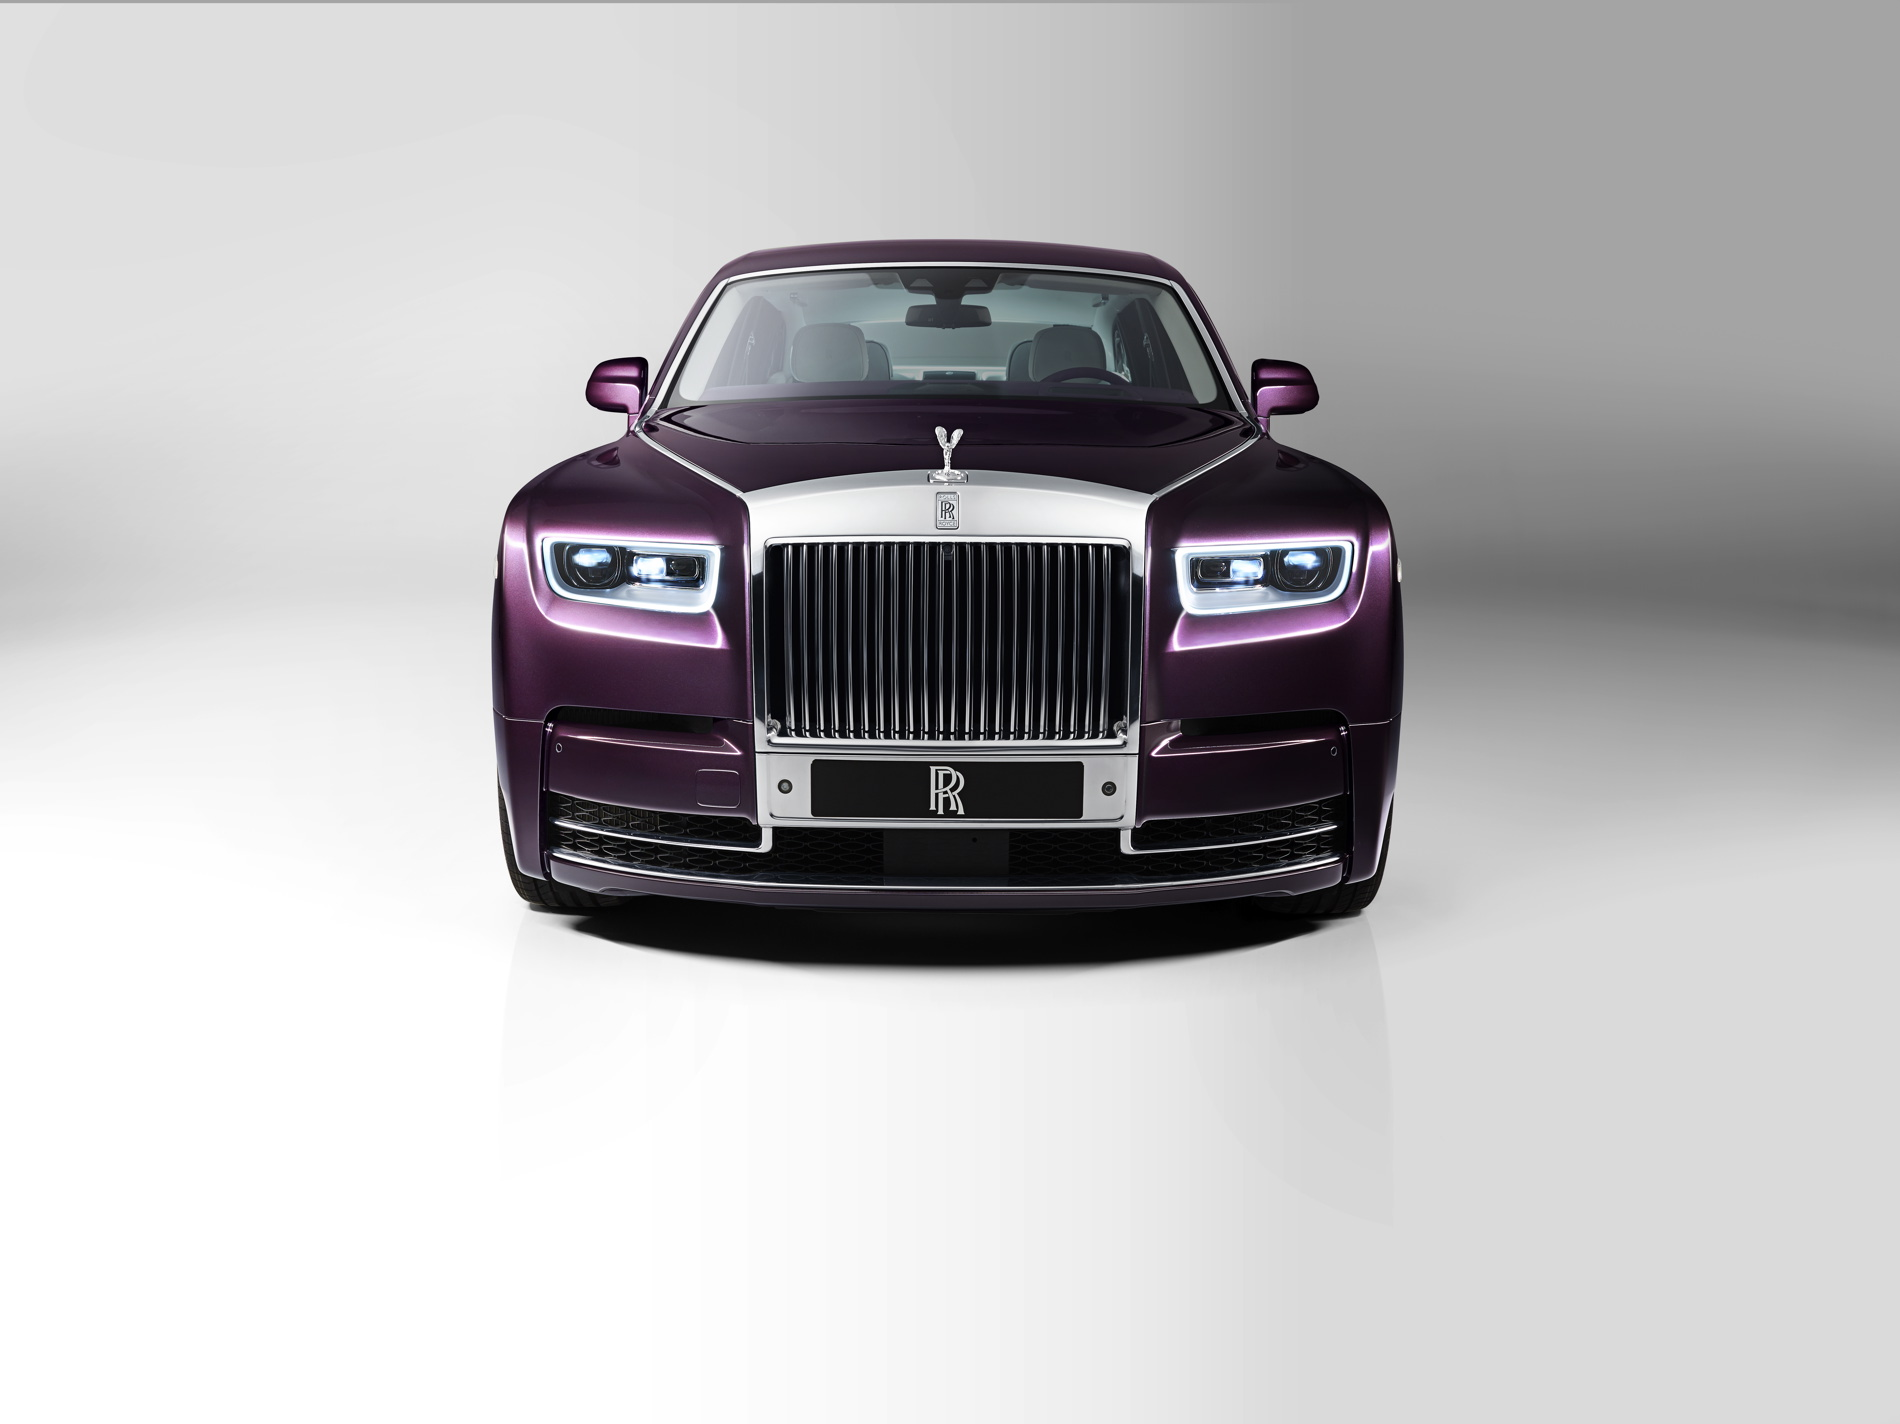 New Rolls Royce Phantom Extended Wheelbase 02